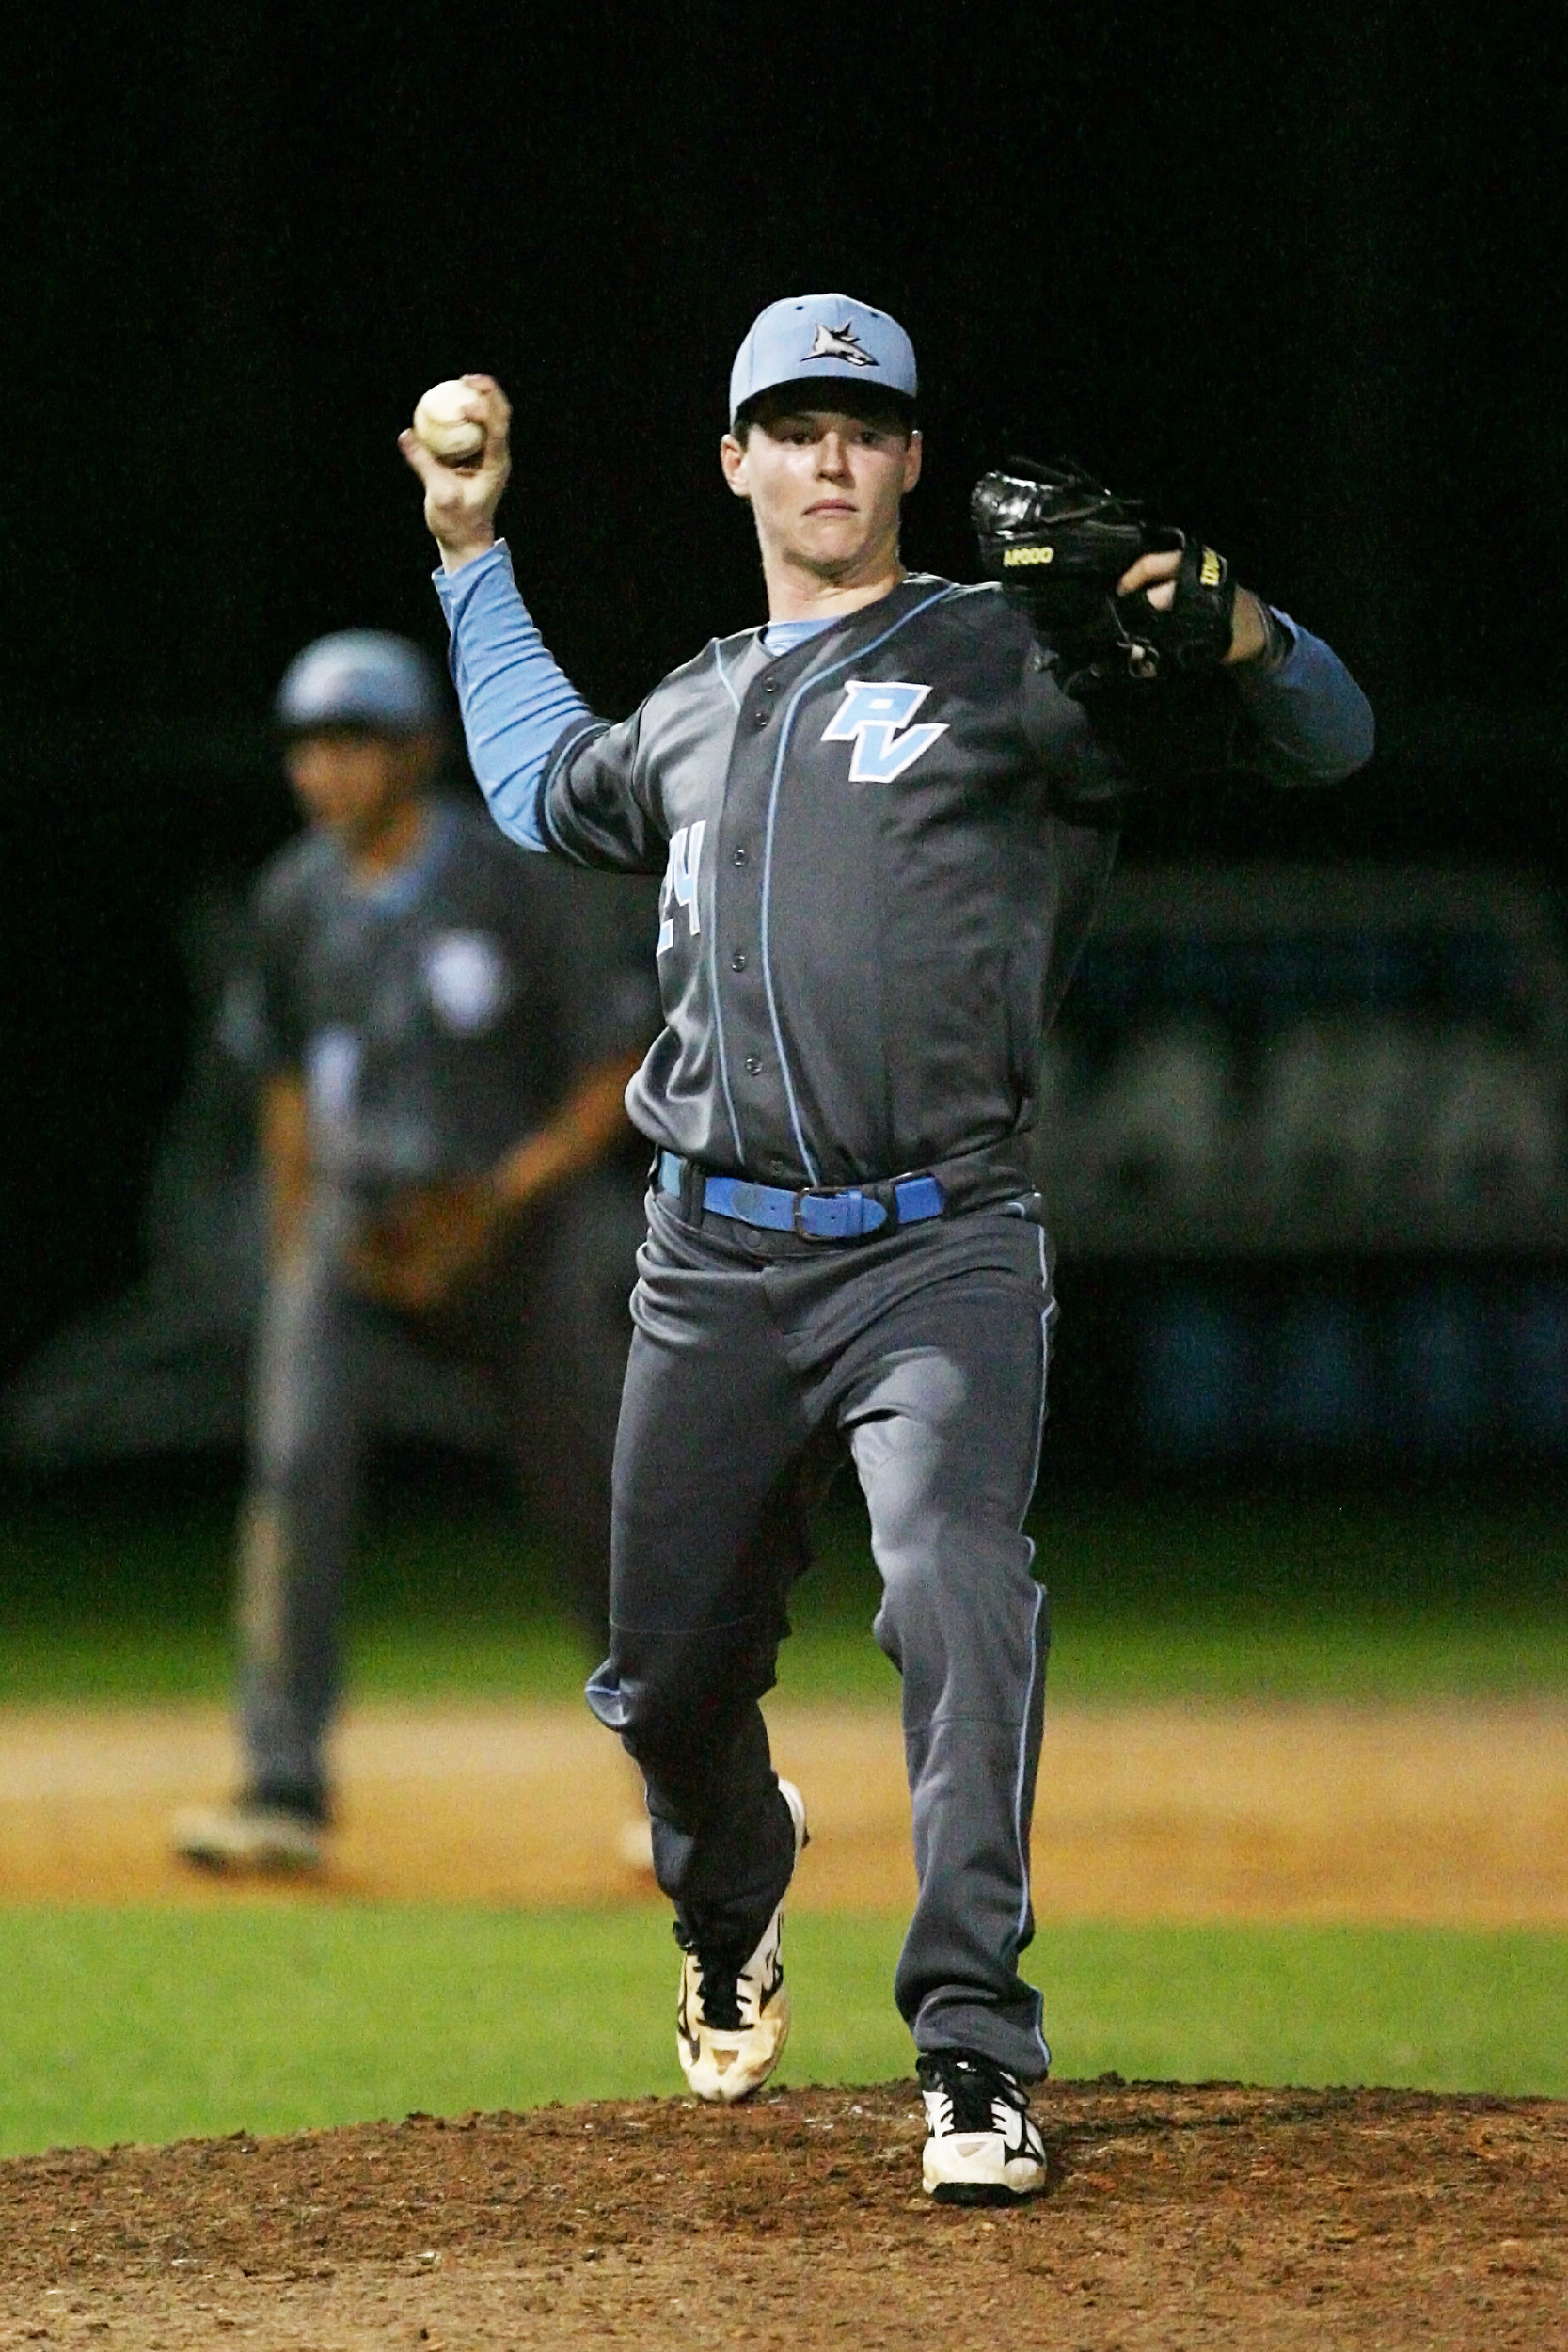 Duncan Van Kuteran pitches in relief for the Sharks